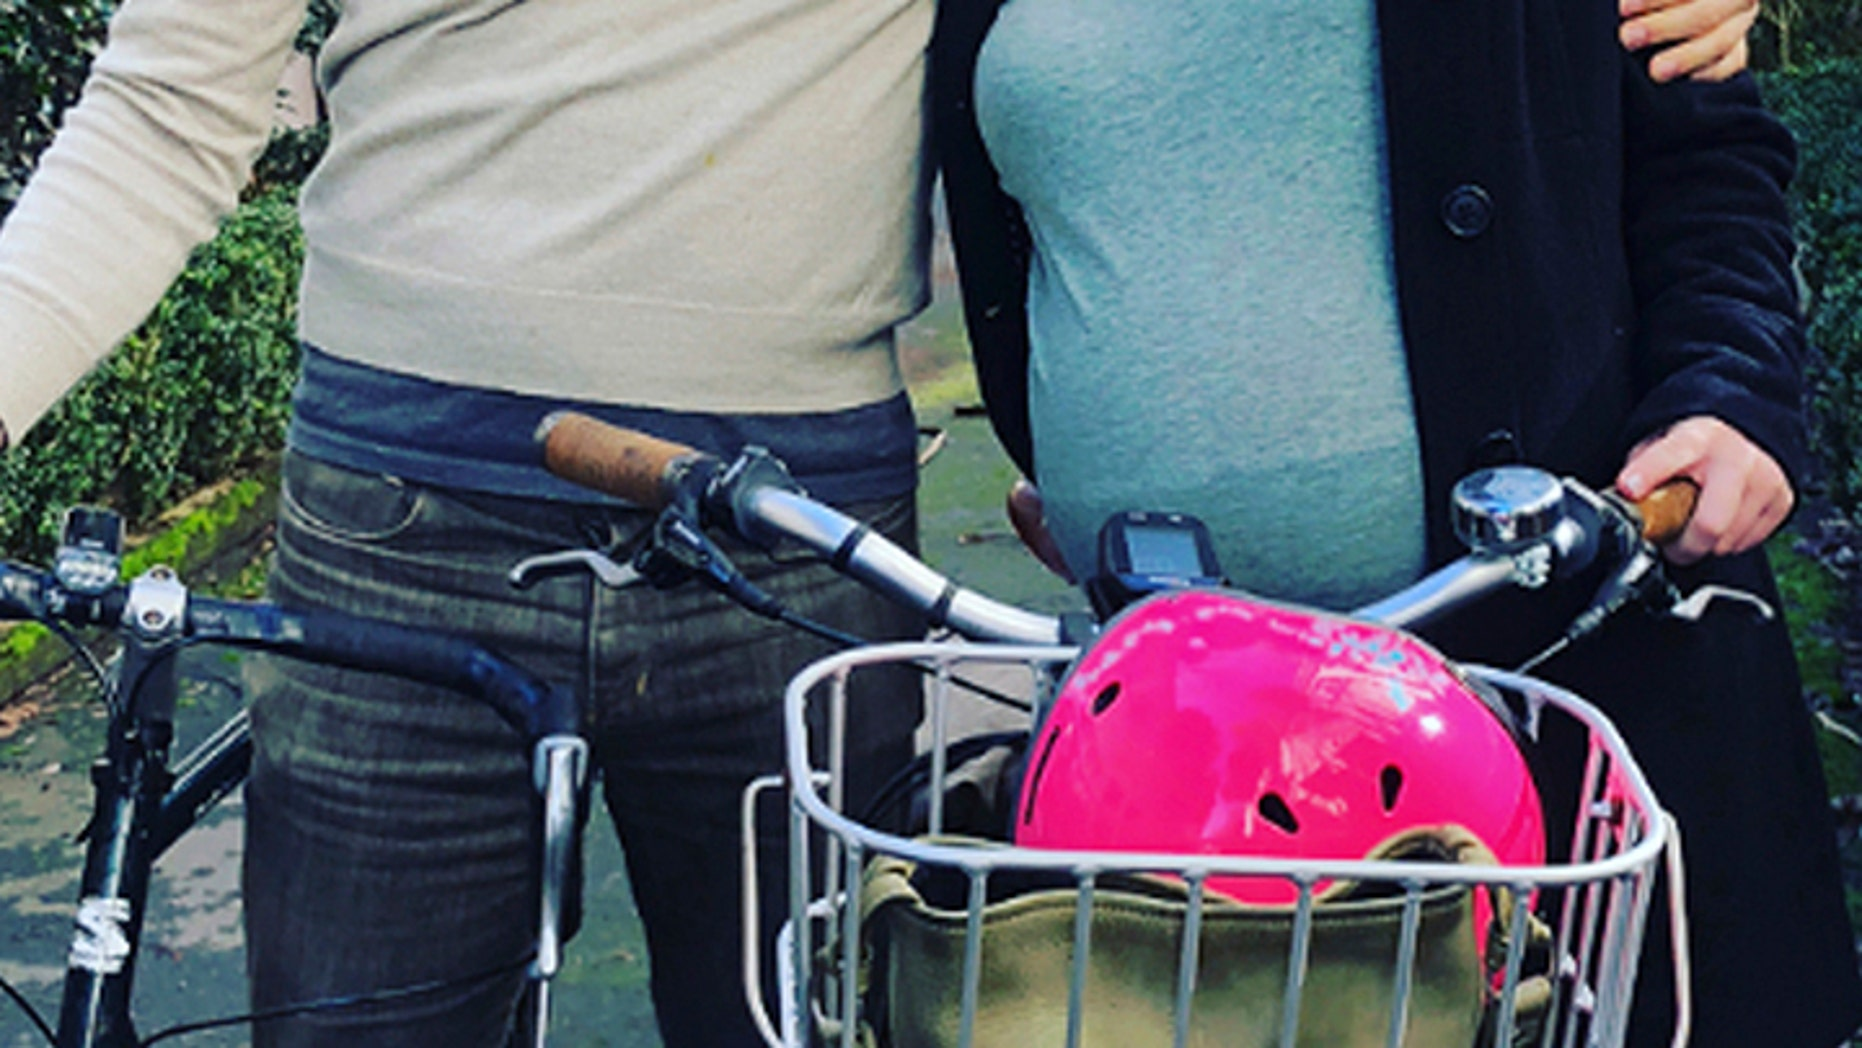 Genter said after 42 weeks of pregnancy she decided to ride to a hospital on her electric bicycle because it was a beautiful morning and there wasn't enough room in the car for her support crew.